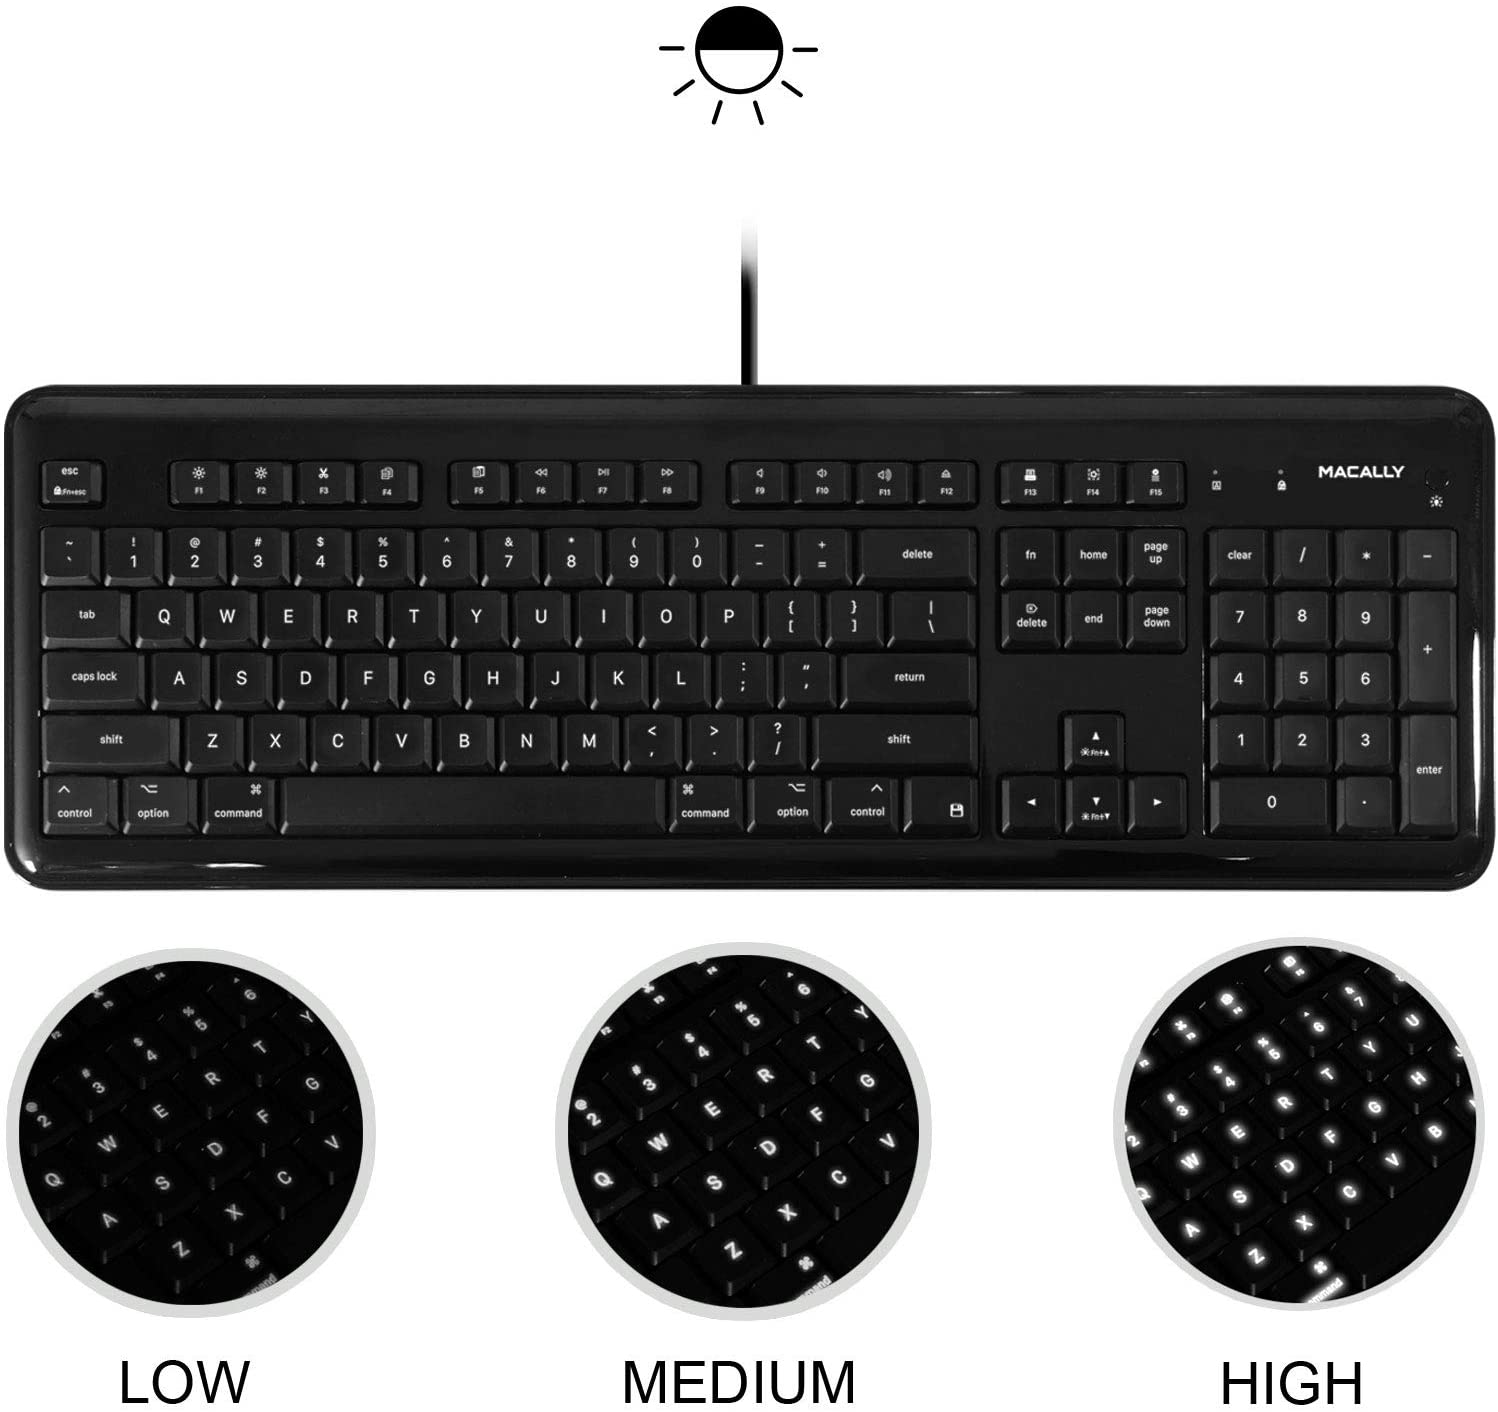 Macally Full Size USB Wired Backlit Keyboard for Apple Mac iMac Desktops Mac Mini, or MacBook Pro/Air Laptop Computers - White LEDs with 3 Level Brightness, Black